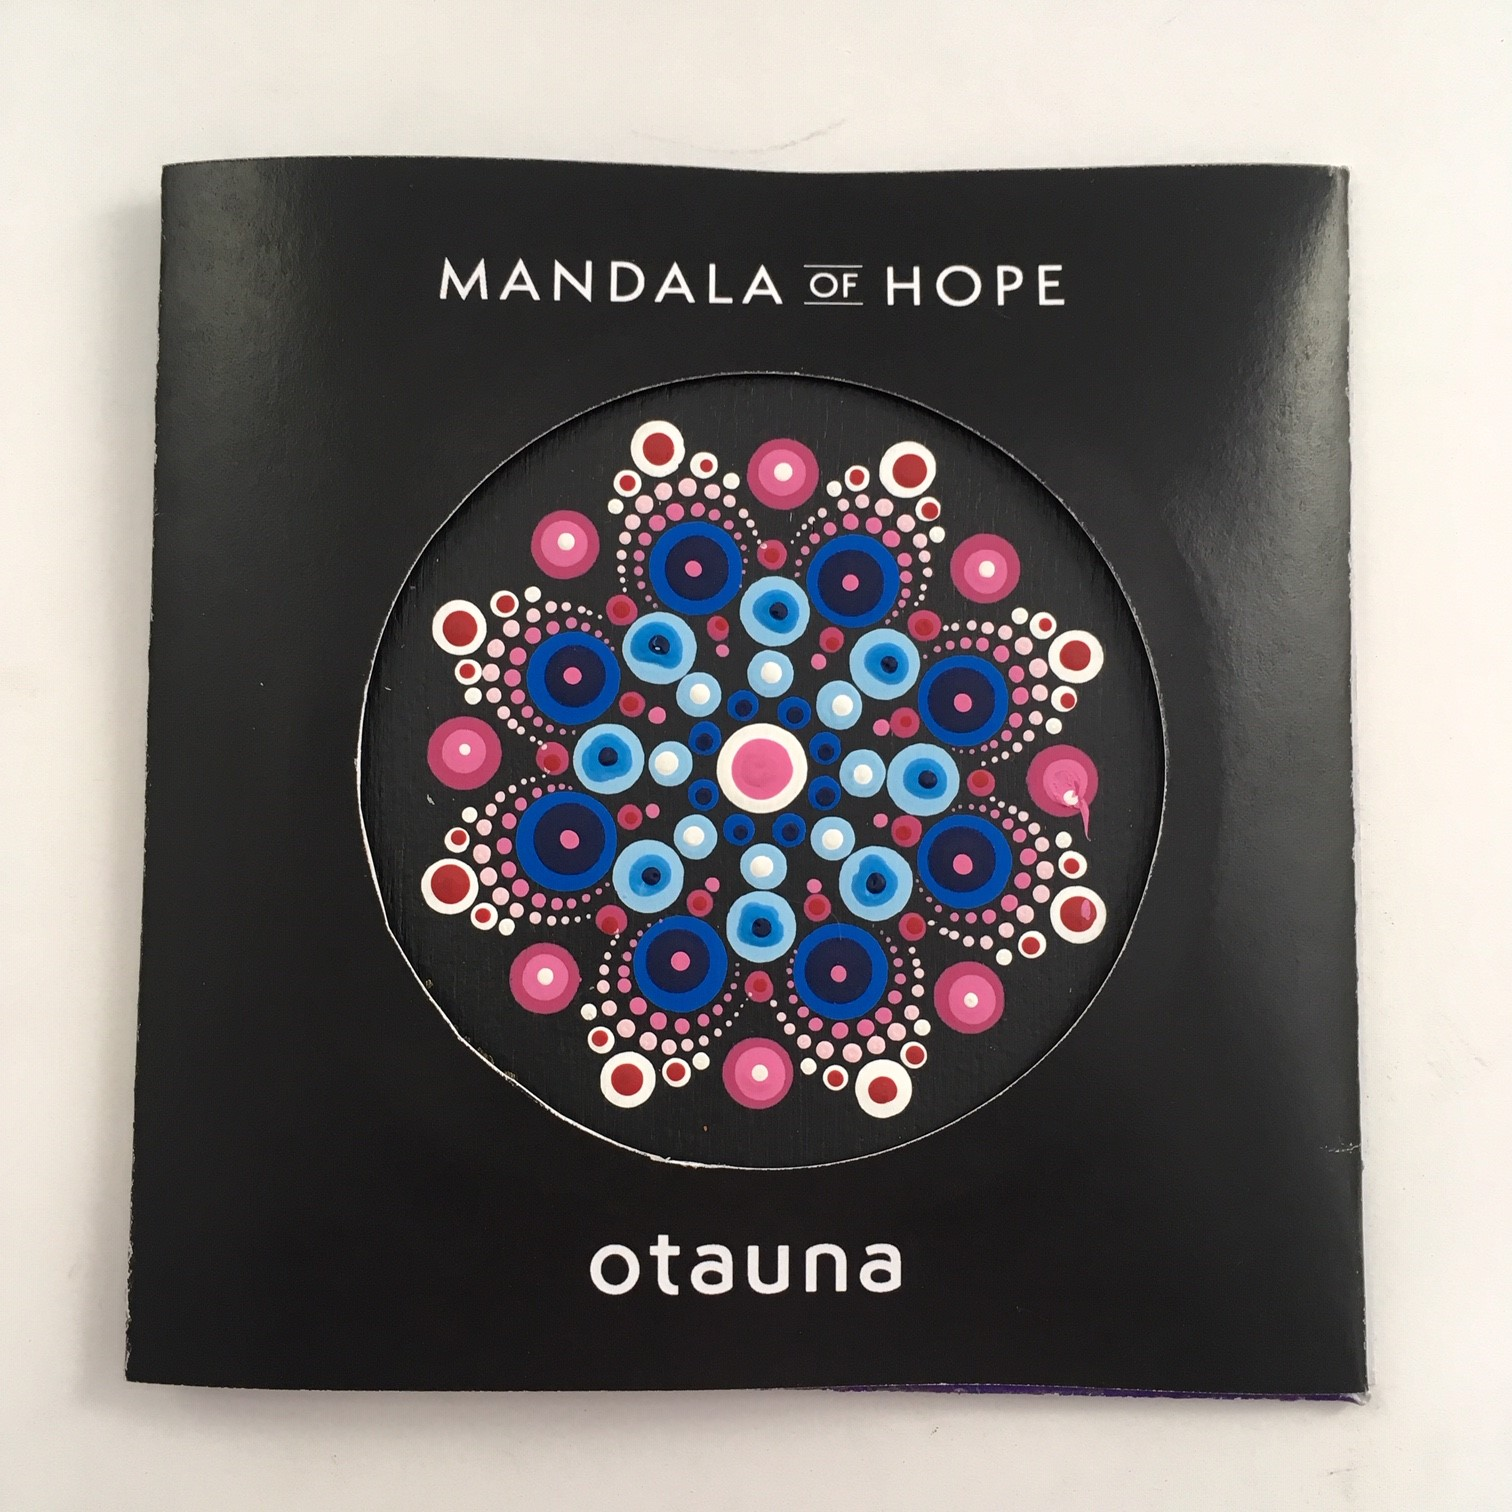 In the  LOVE is all we need  mandala, the blue dots represent a difficult time in one's life. The pink dots encircle the blue, symbolizing the love that surrounds us when we need it most.